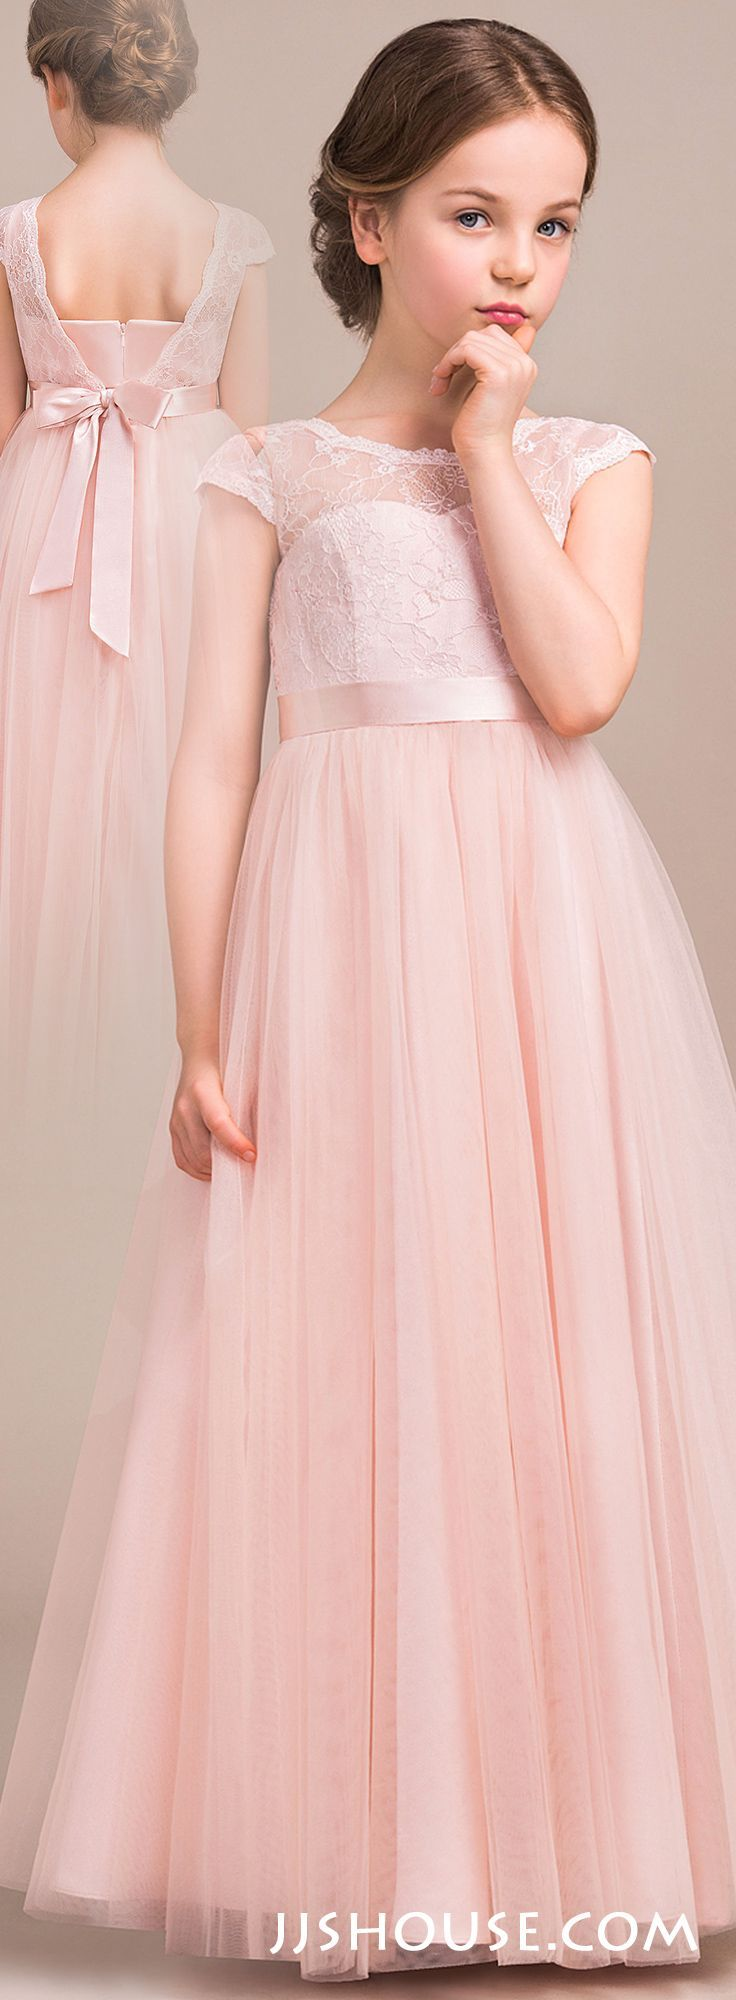 Best 25 junior bridesmaid dresses ideas on pinterest styles of a lineprincess scoop neck floor length bows zipper up sleeves short sleeves no pearl pink general tulle lace junior bridesmaid dress ombrellifo Images